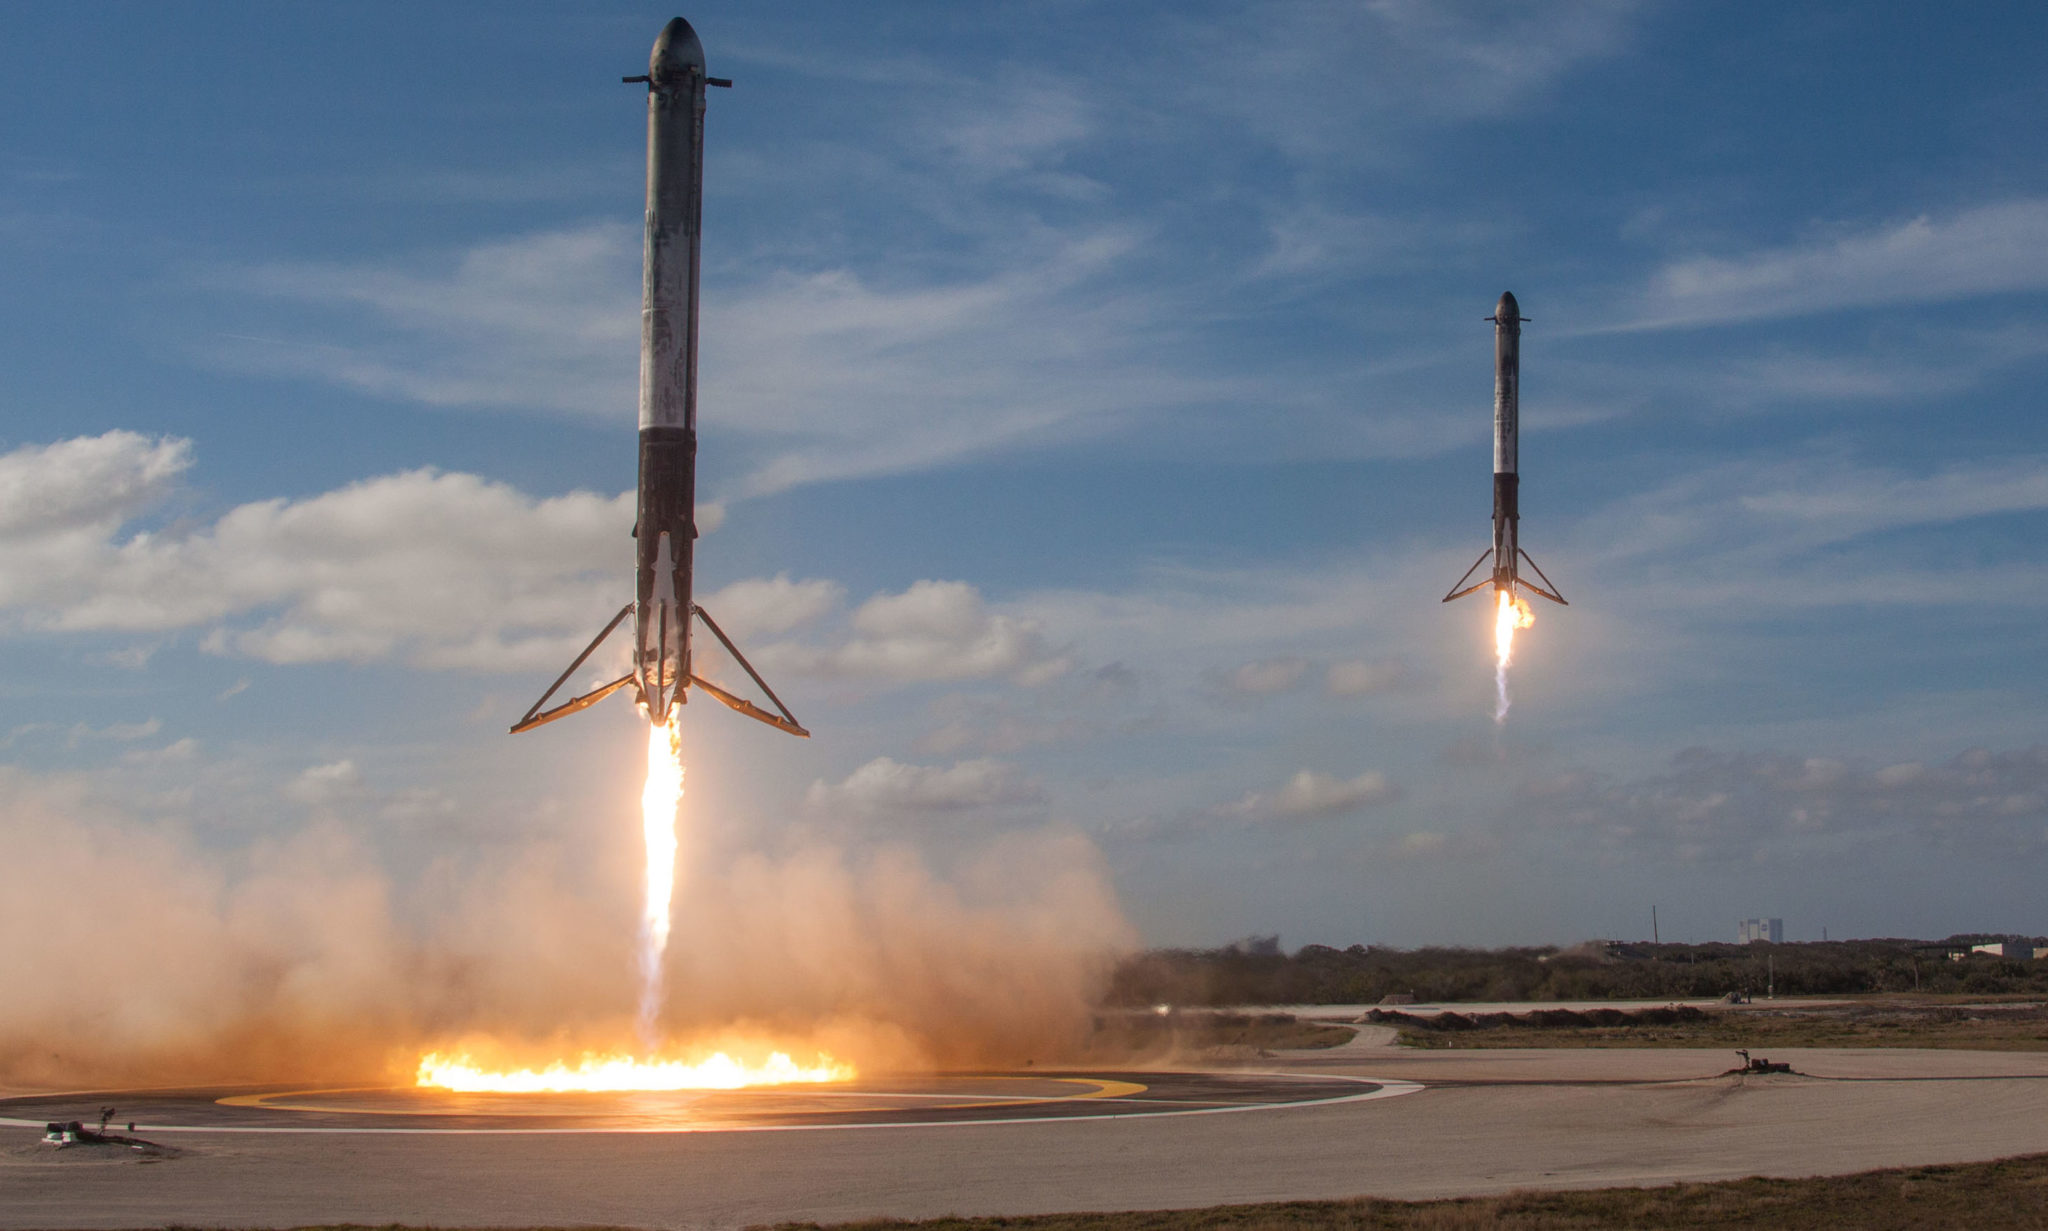 SpaceX is one step closer to launching astronauts into space